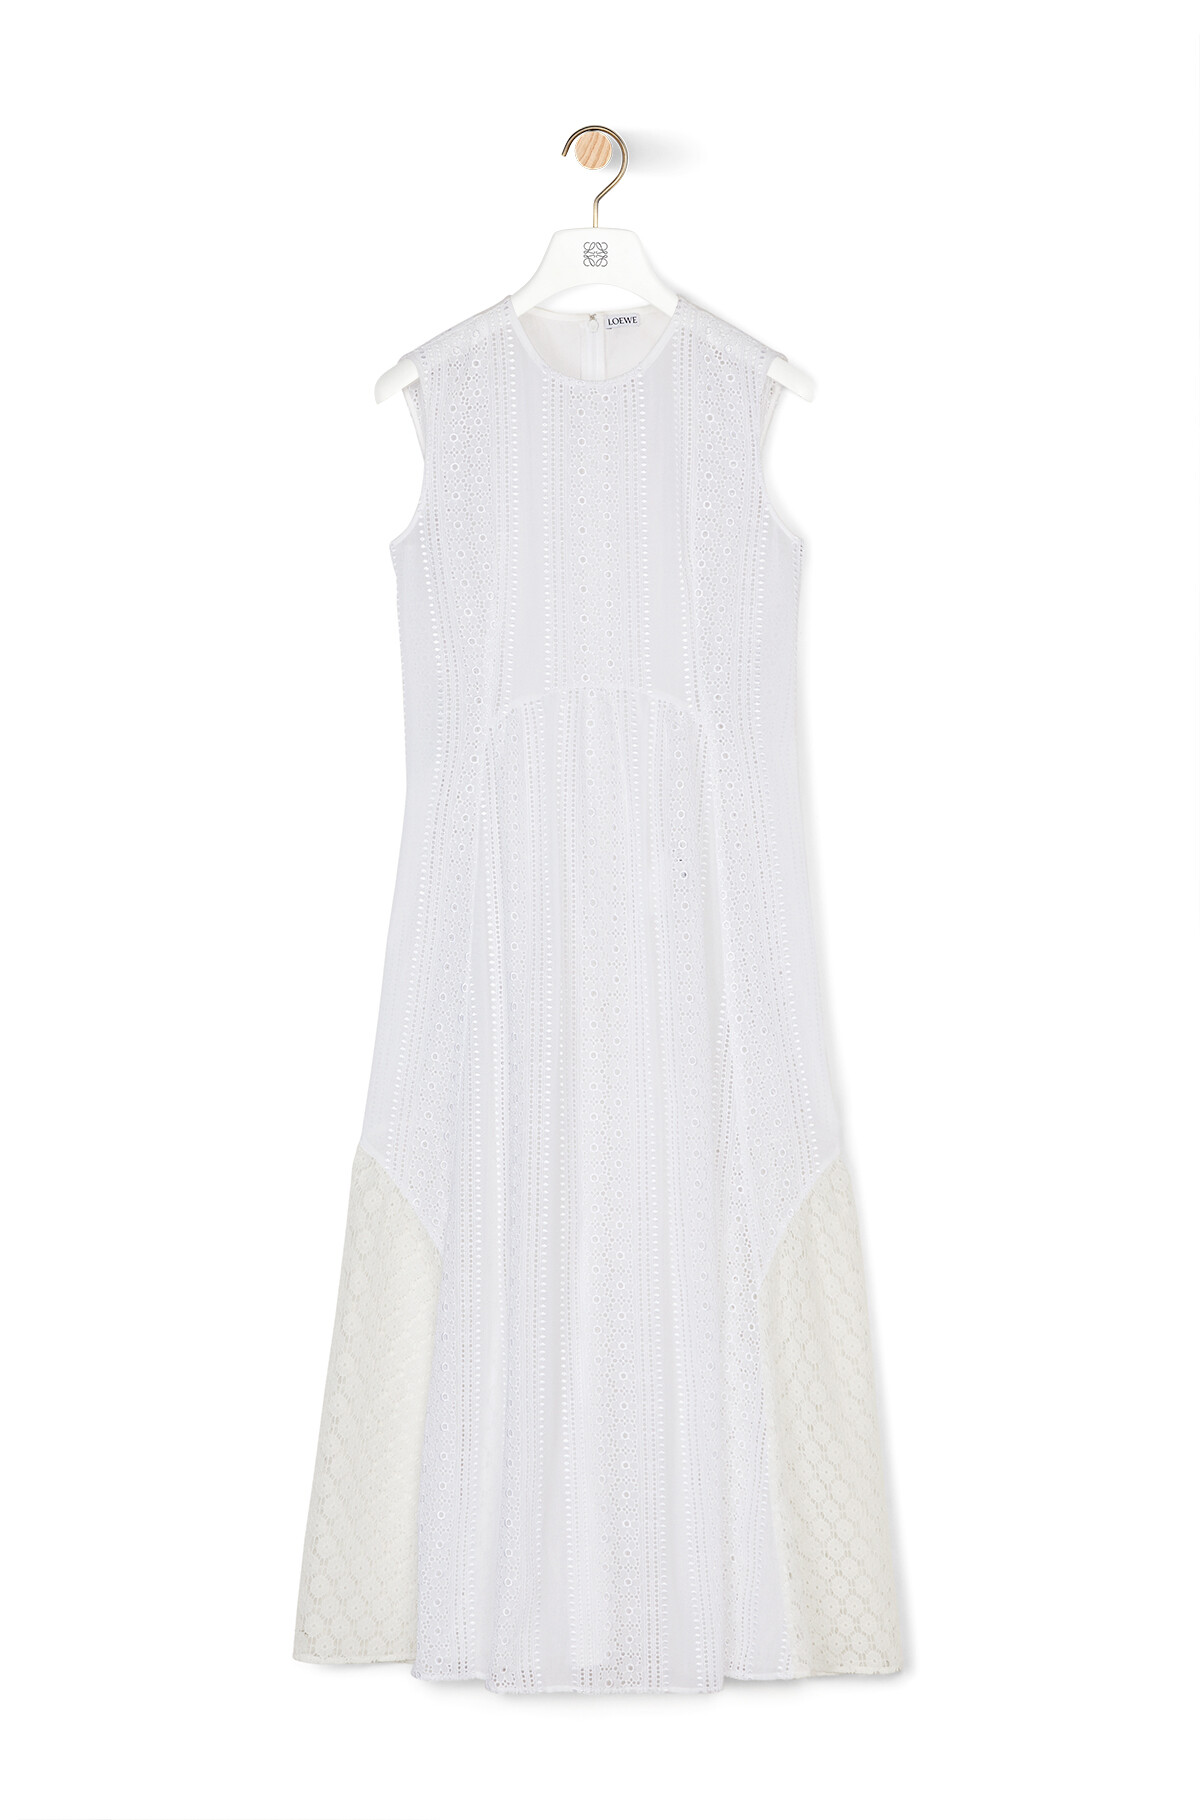 LOEWE Sleeveless Lace Dress White front